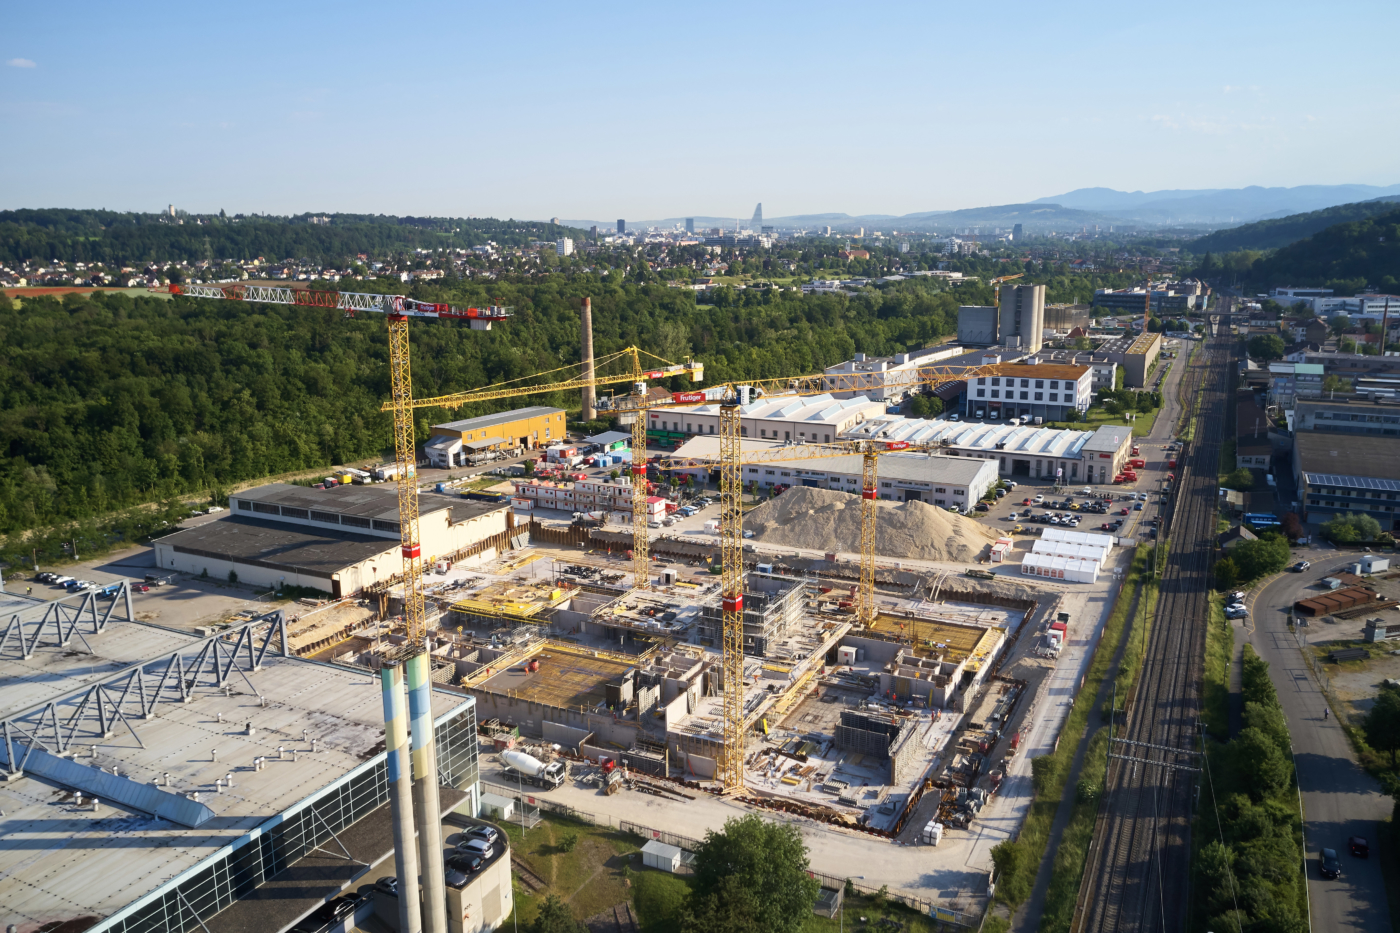 Photos for this media folder, Aerial view of the uptownBasel construction site from 5 June 2019, looking from the Sundgauer Viaduct towards the city of Basel. The site just outside the university city of Basel is being developed into a competence centre for Industry 4.0.  © Copyright Bela Böke, arbel gmbh  Digitale Medienmappe «Laying the uptownBasel foundation stone: a quantum leap for the industry», uptownBasel